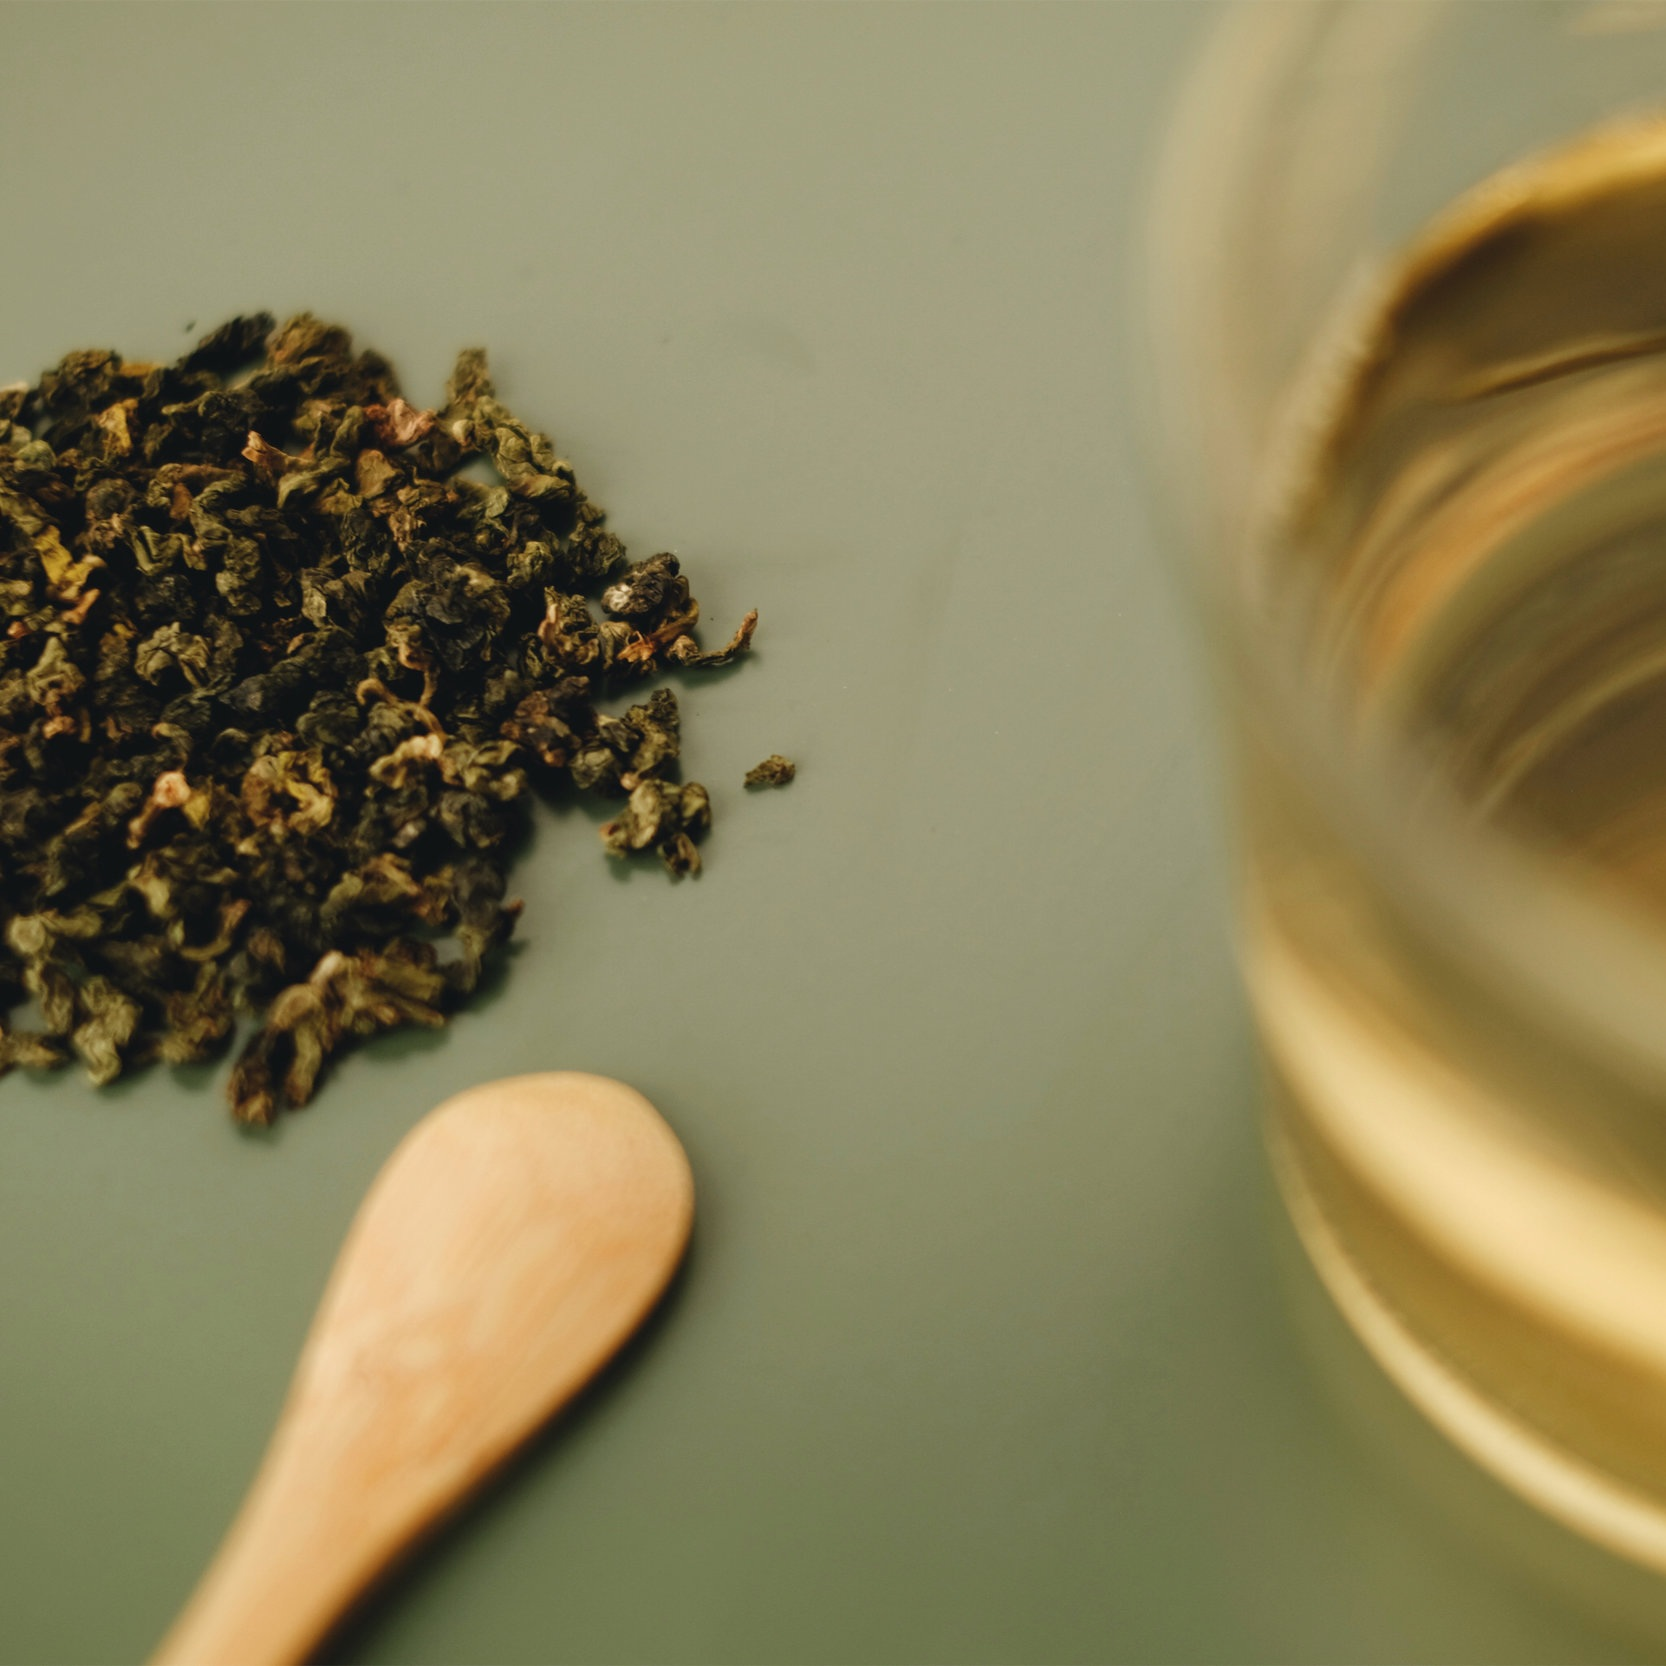 Properties - Oolong tea has many health benefits. These include benefits for heart, bone, brain and dental health. Besides, it may boost your metabolism, decrease your risk of developing type 2 diabetes and protect against certain types of cancer.